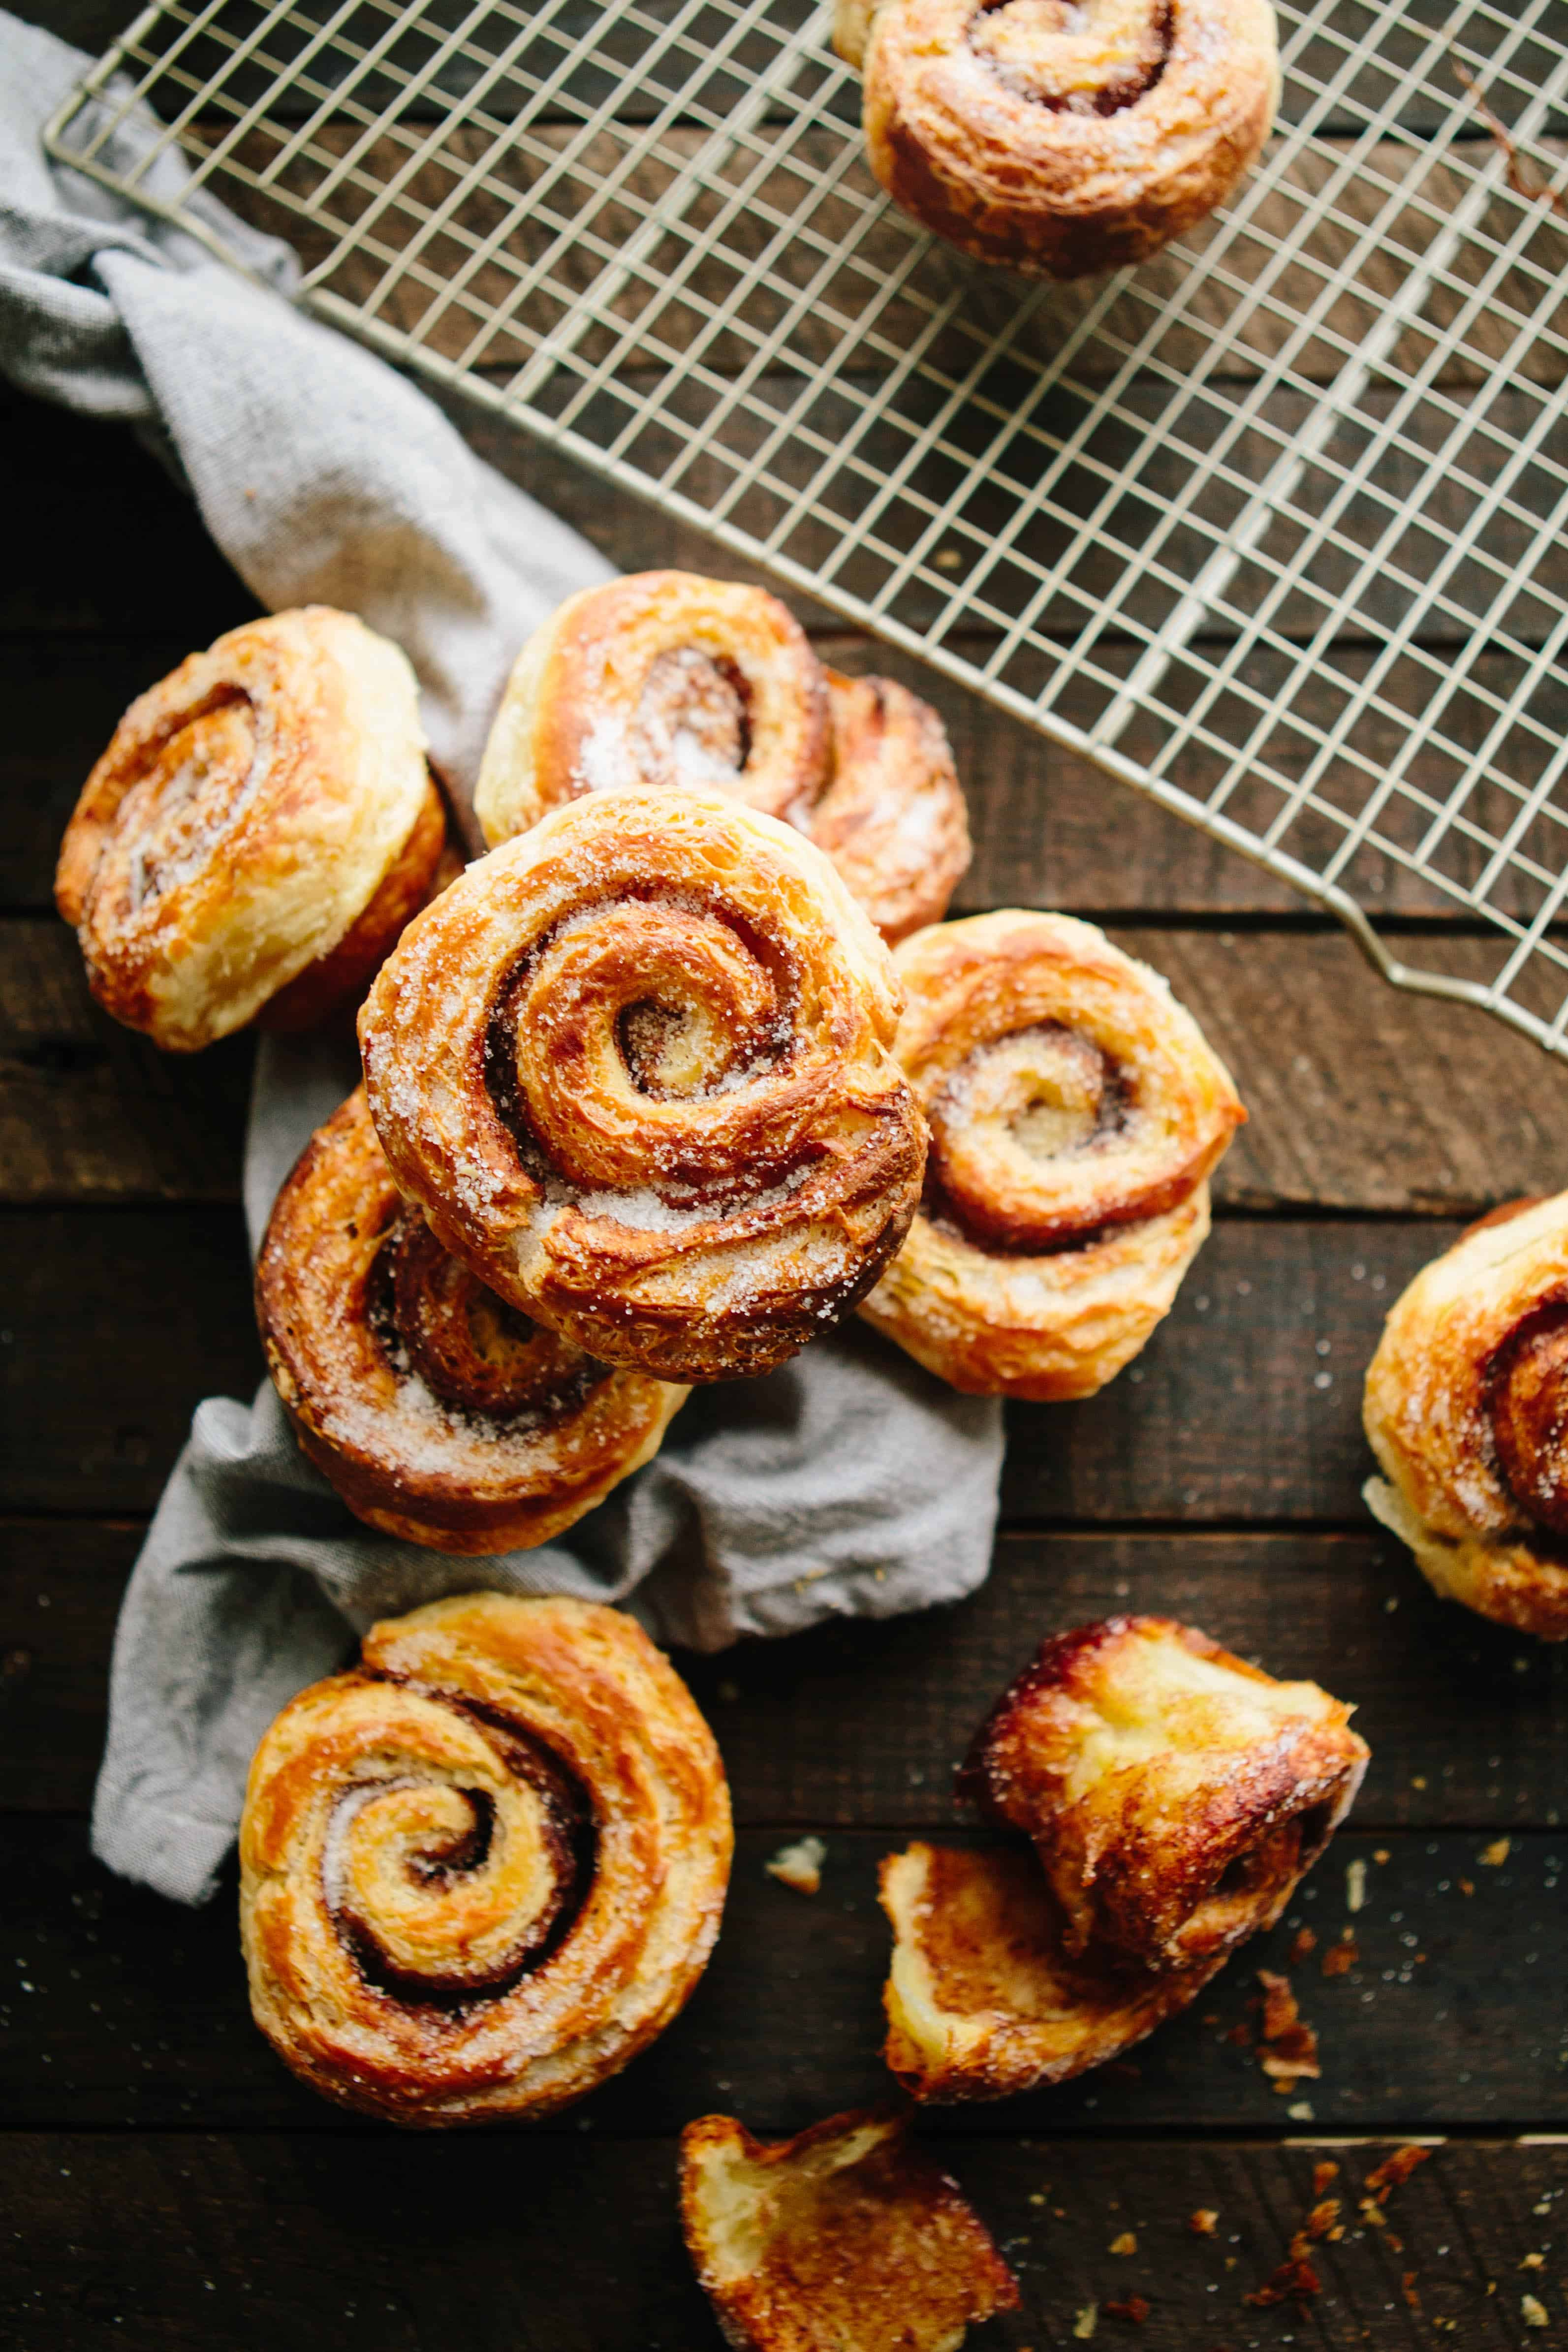 A pile of croissant morning buns on a wood board.